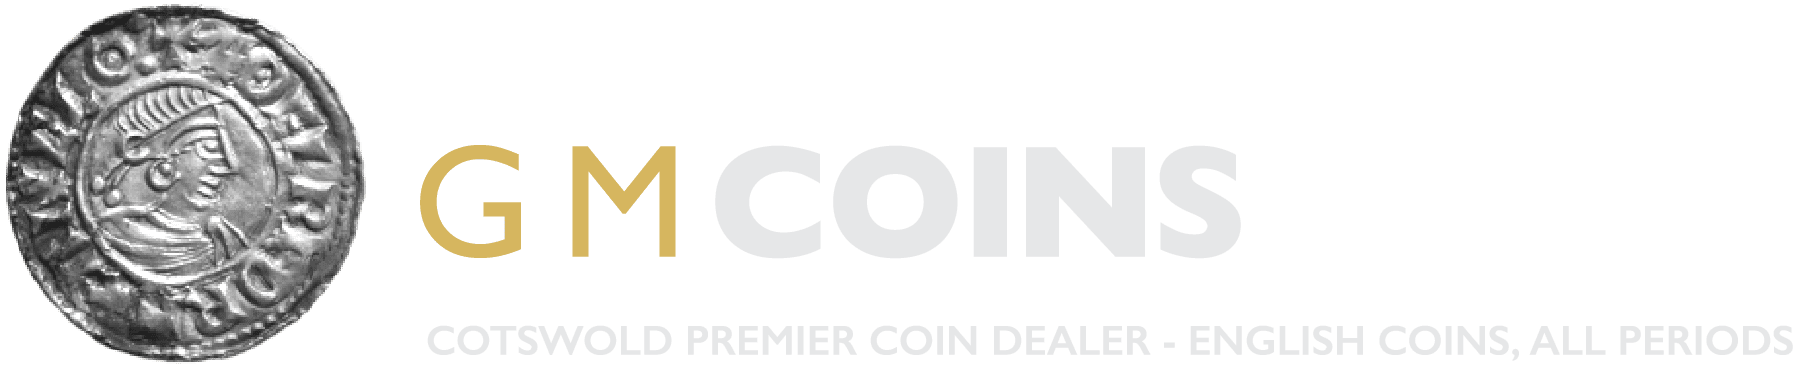 UK coin Dealer and Premier Cotswold coin dealer | GM Coins